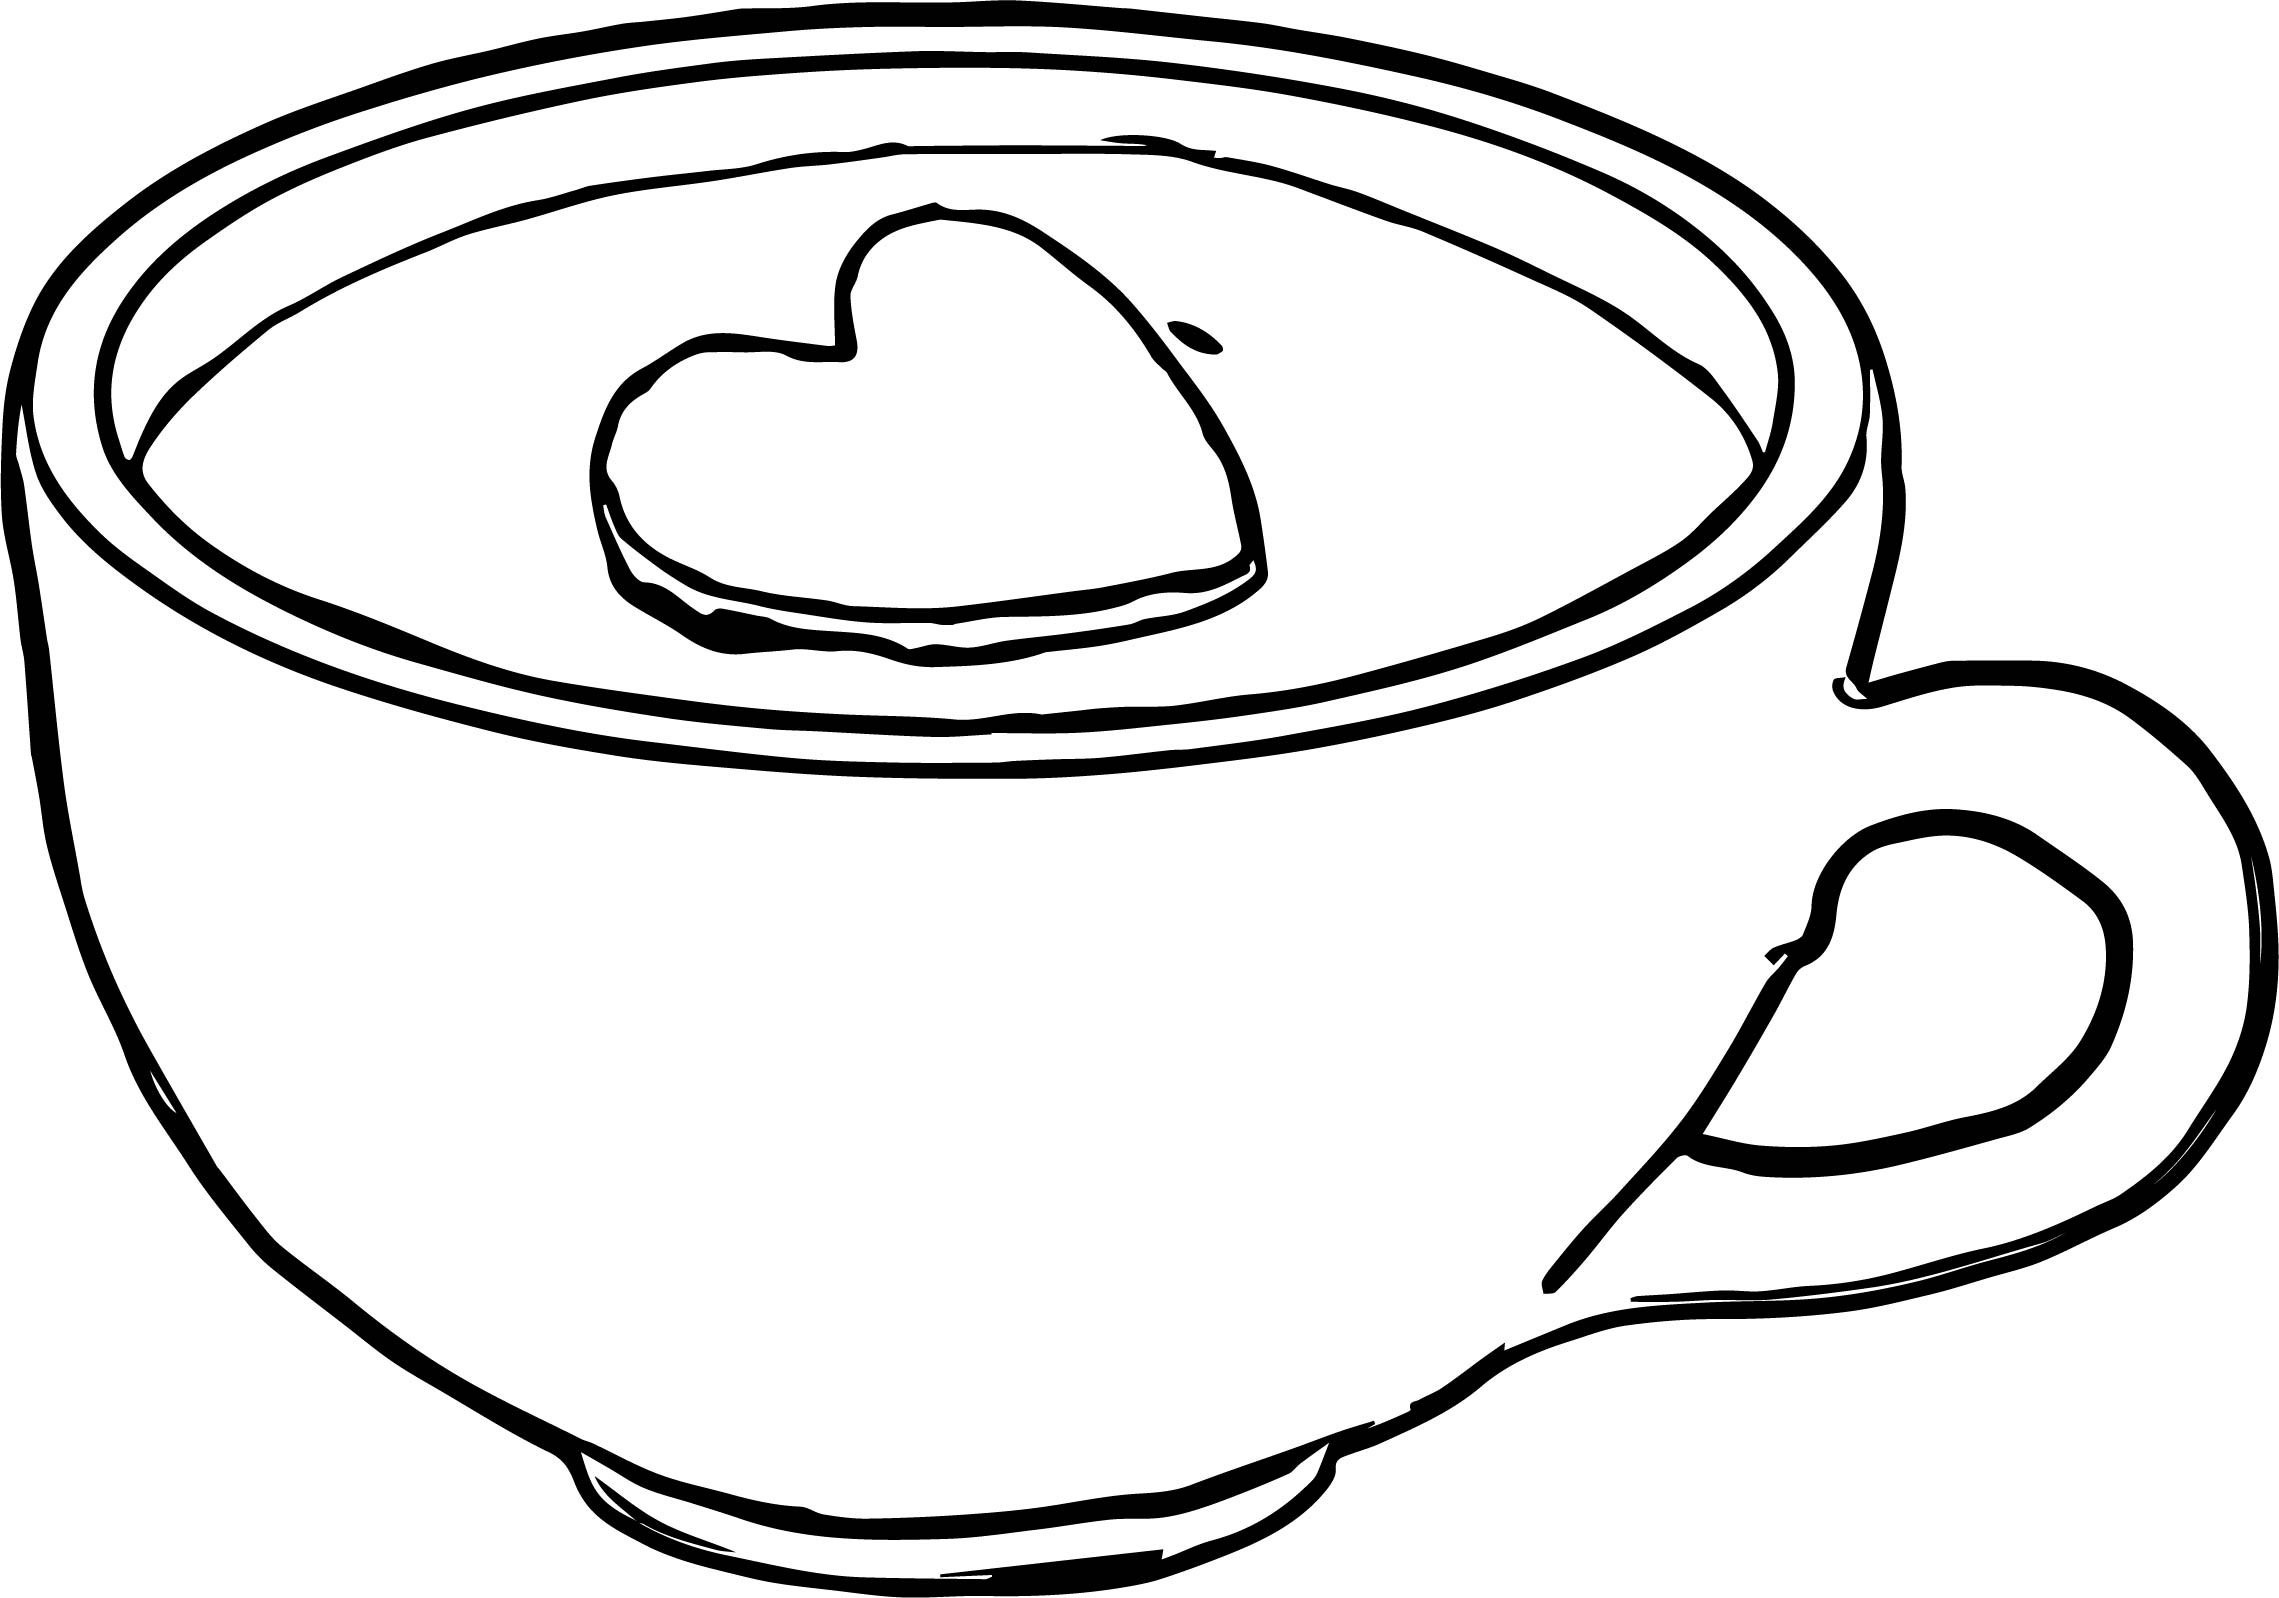 Coloring Pages: Fancy Plush Design Tea Cup Coloring Org Teacup Pig - Free Printable Tea Cup Coloring Pages